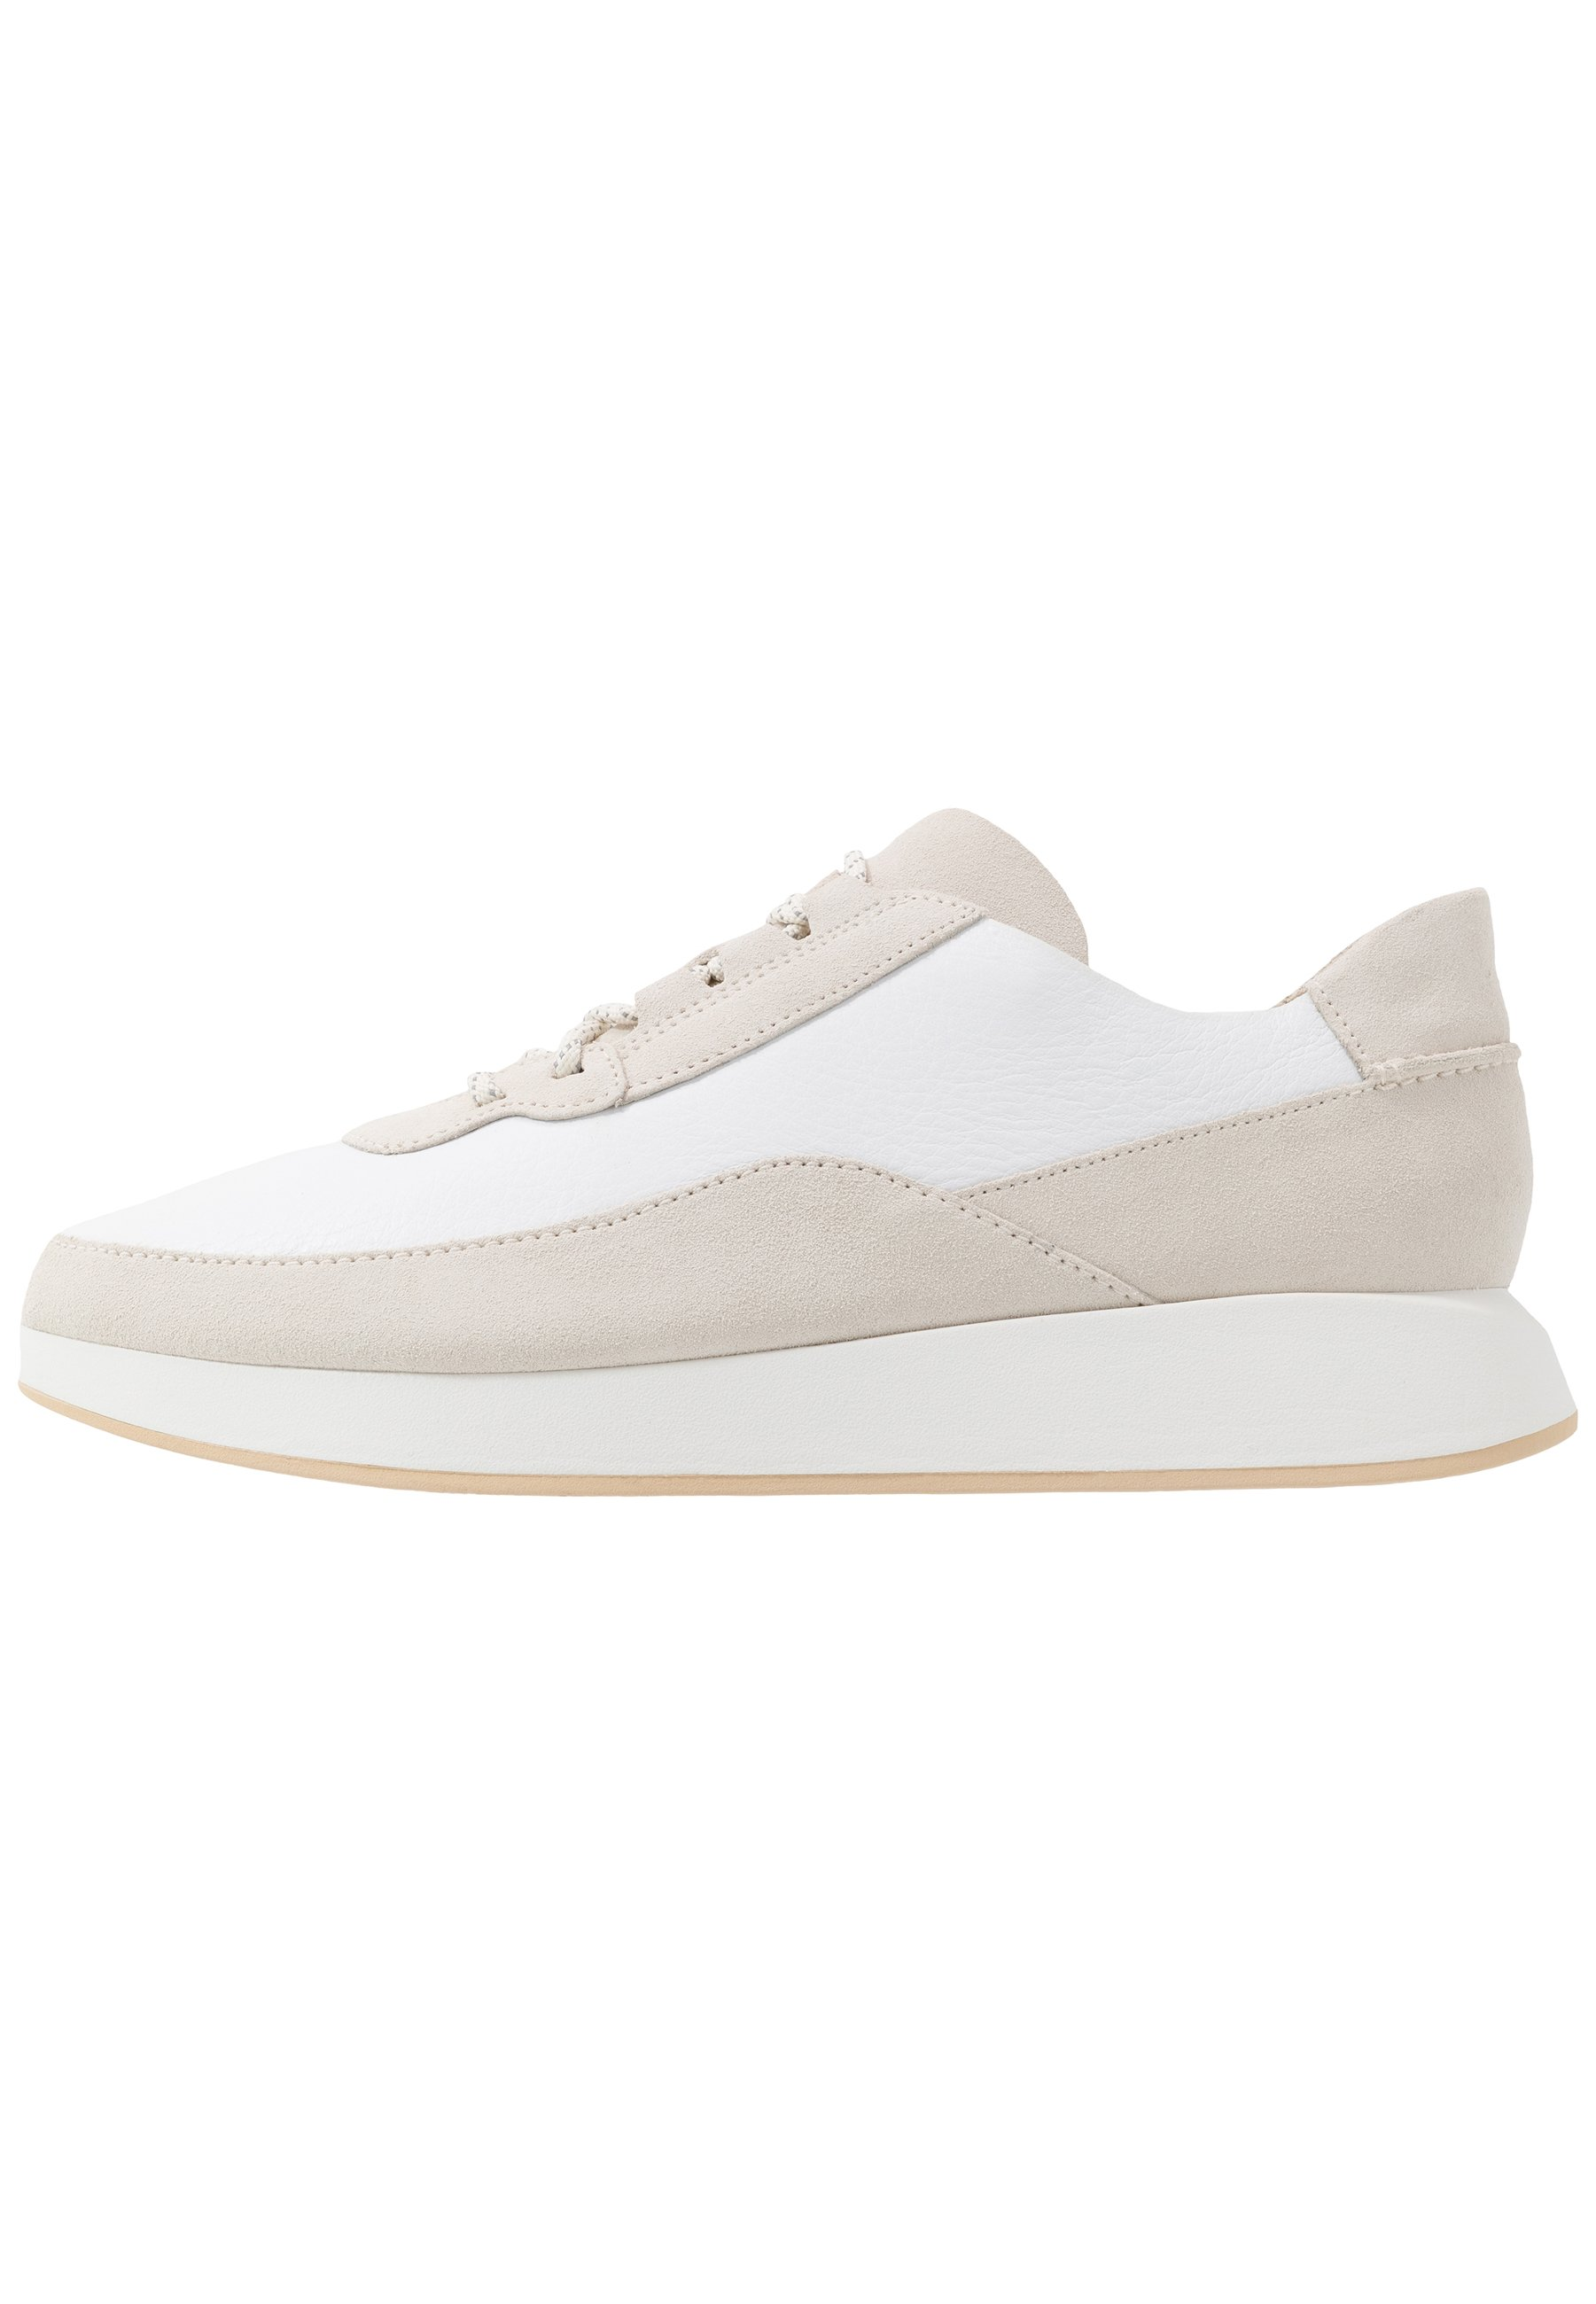 Clarks Originals KIOWA PACE Joggesko white Zalando.no